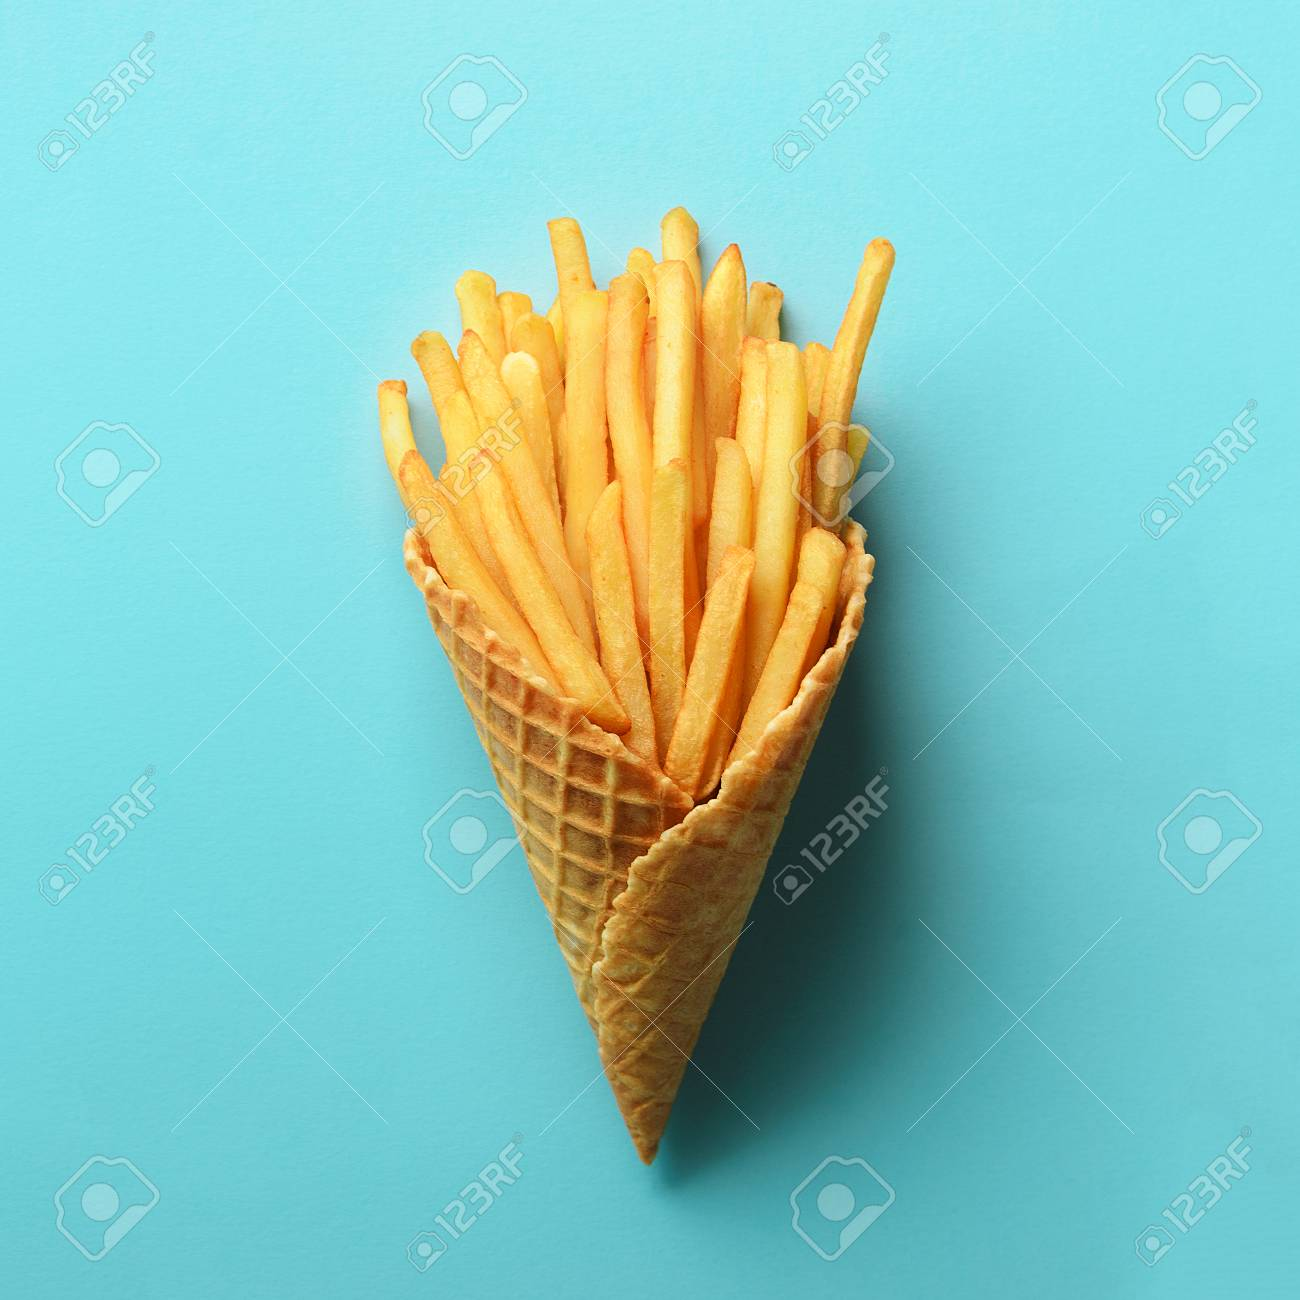 Fried potatoes in waffle cones on blue background. Hot salty french fries with tomato sauce. Fast food, junk food, diet concept. Top view. Minimal style. Pop art design, creative concept - 104932496